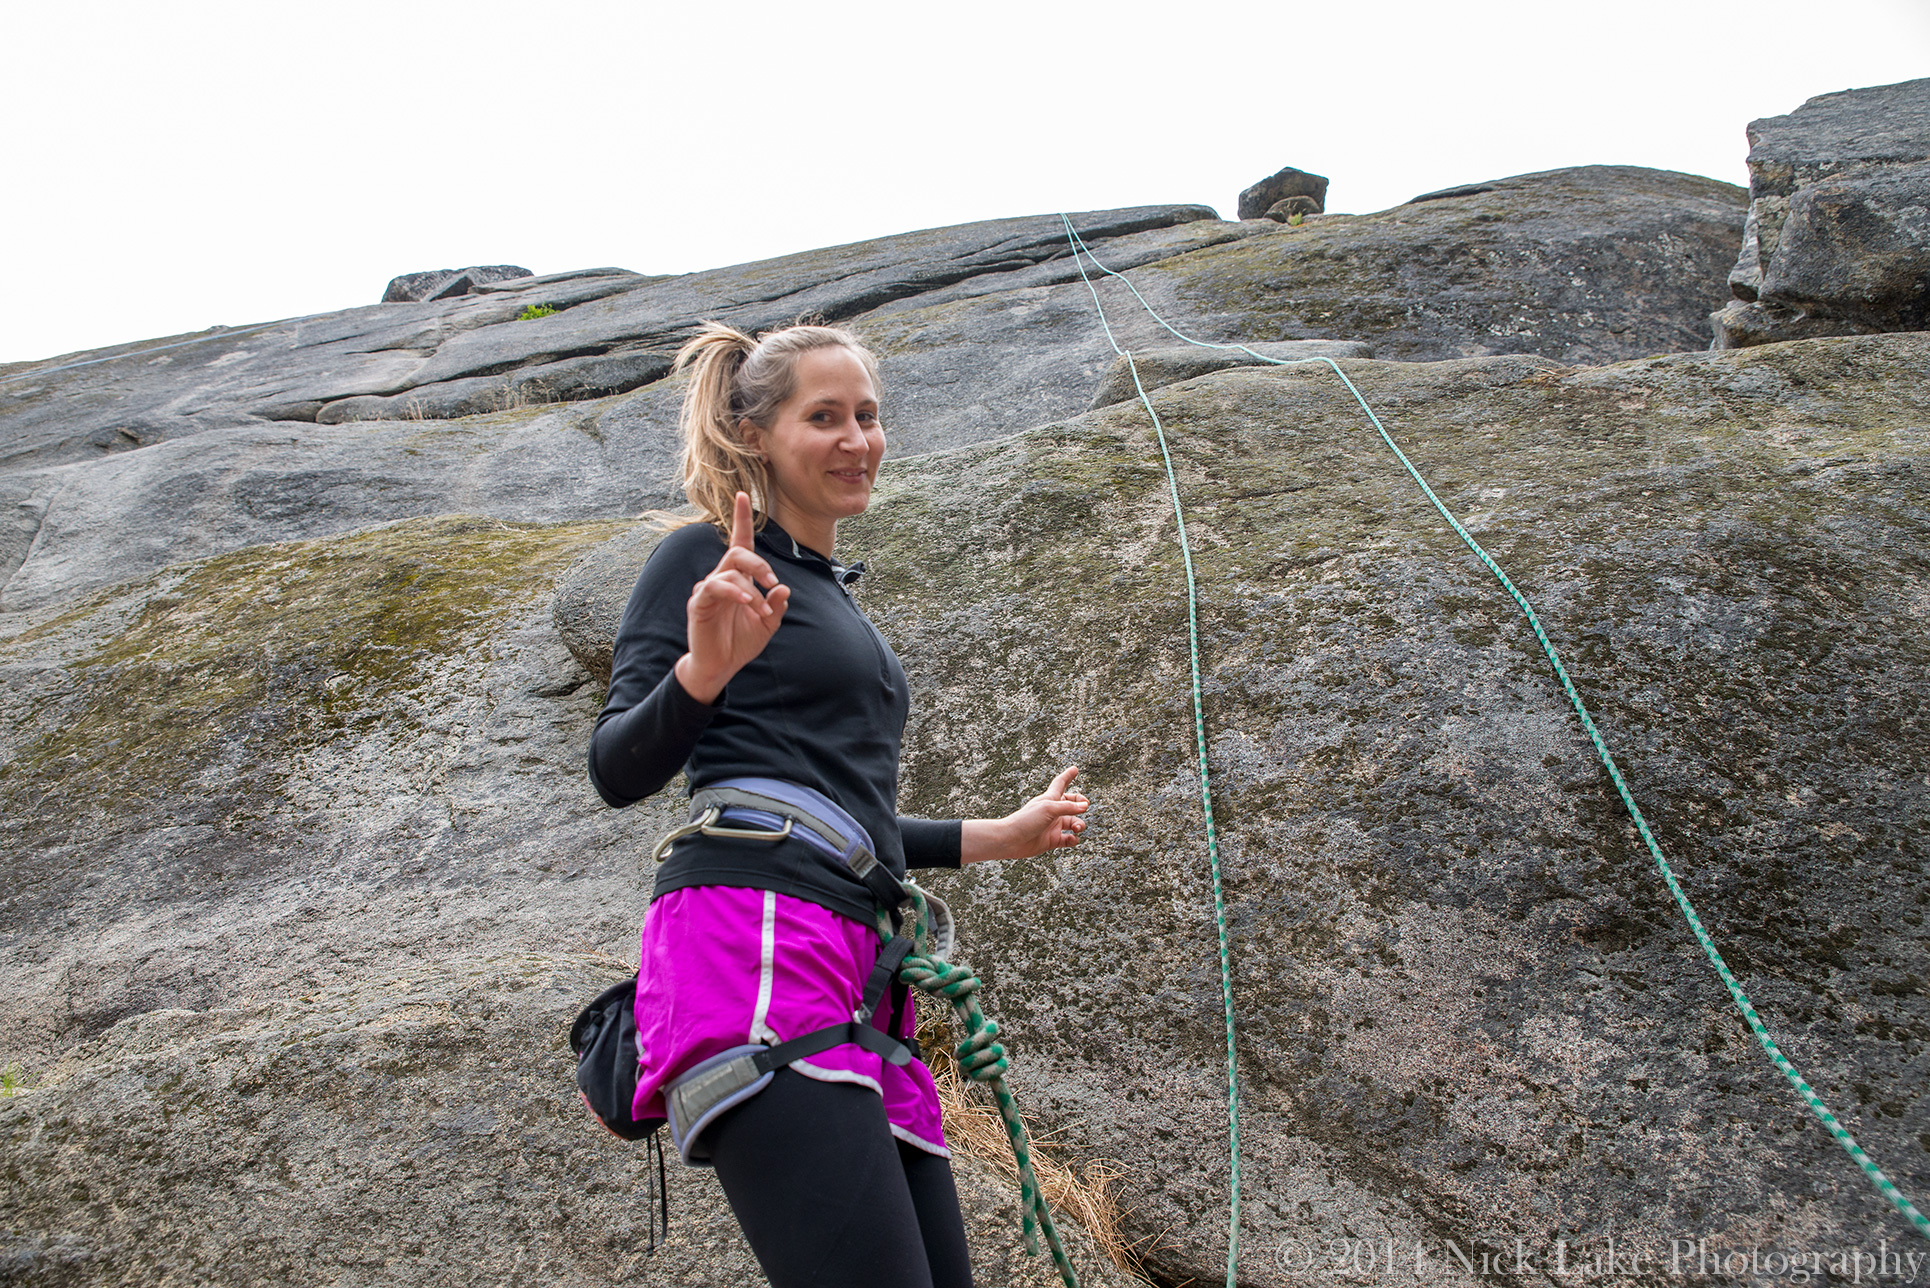 Kelly prepares to attempt her first route